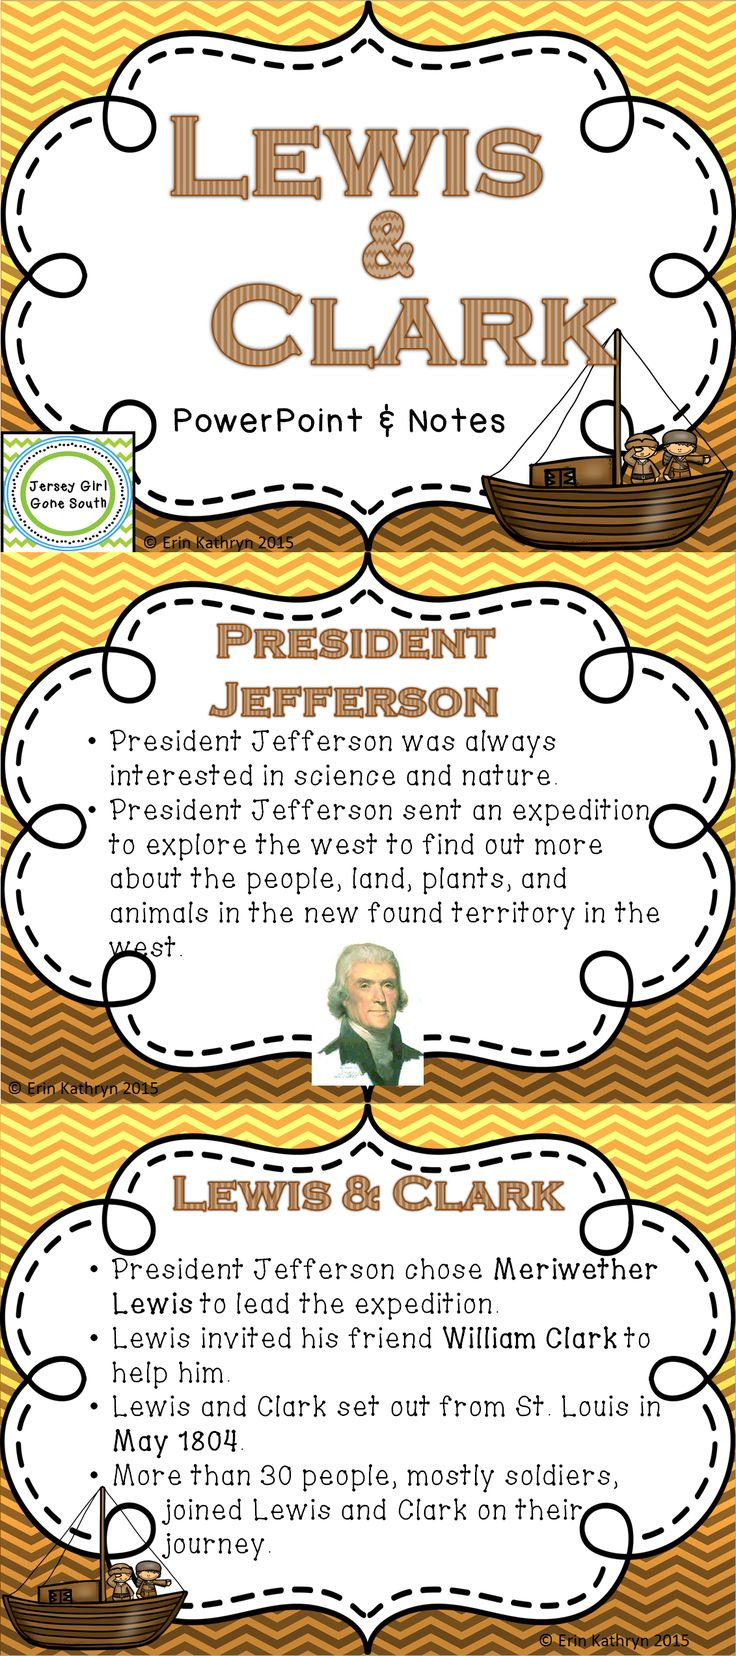 This PowerPoint and note set includes the most important topics of Lewis and Clark's expedition West, which include Sacagawea, the Corps of Discovery, and what Lewis and Clark discovered.